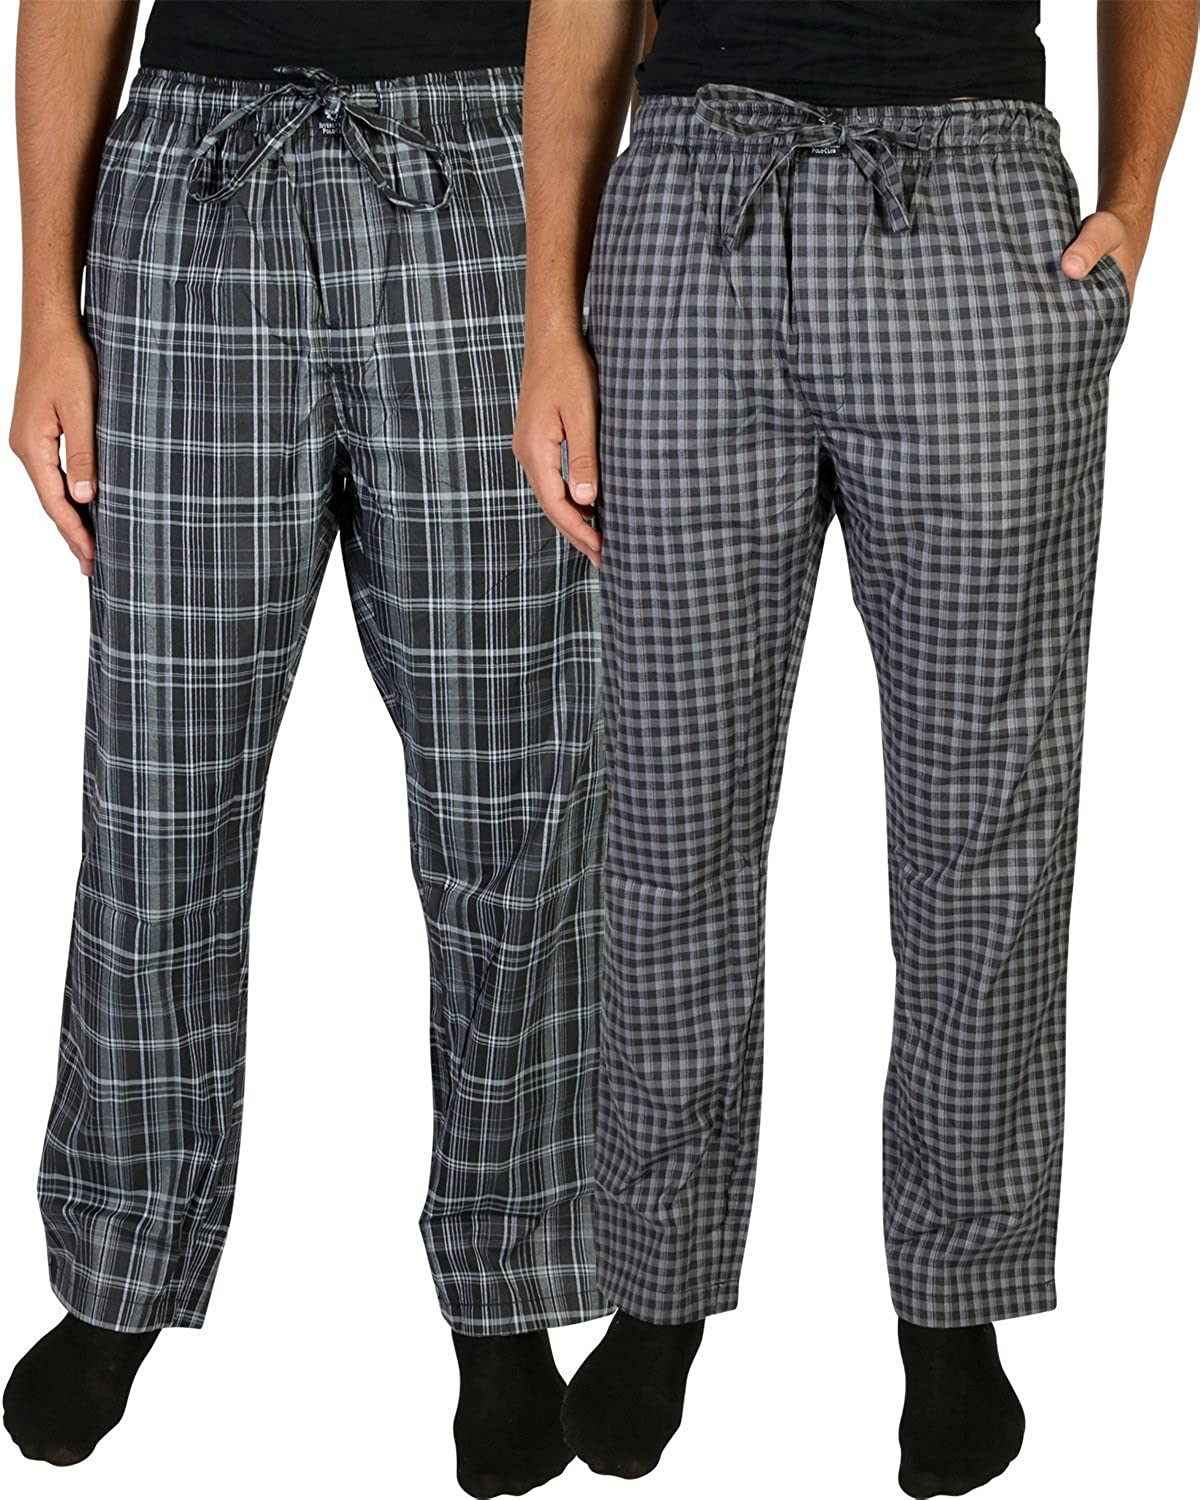 Beverly Hills Polo Club Men's Woven Plaid Sleep Lounge Pajama Pants (2-Pack)